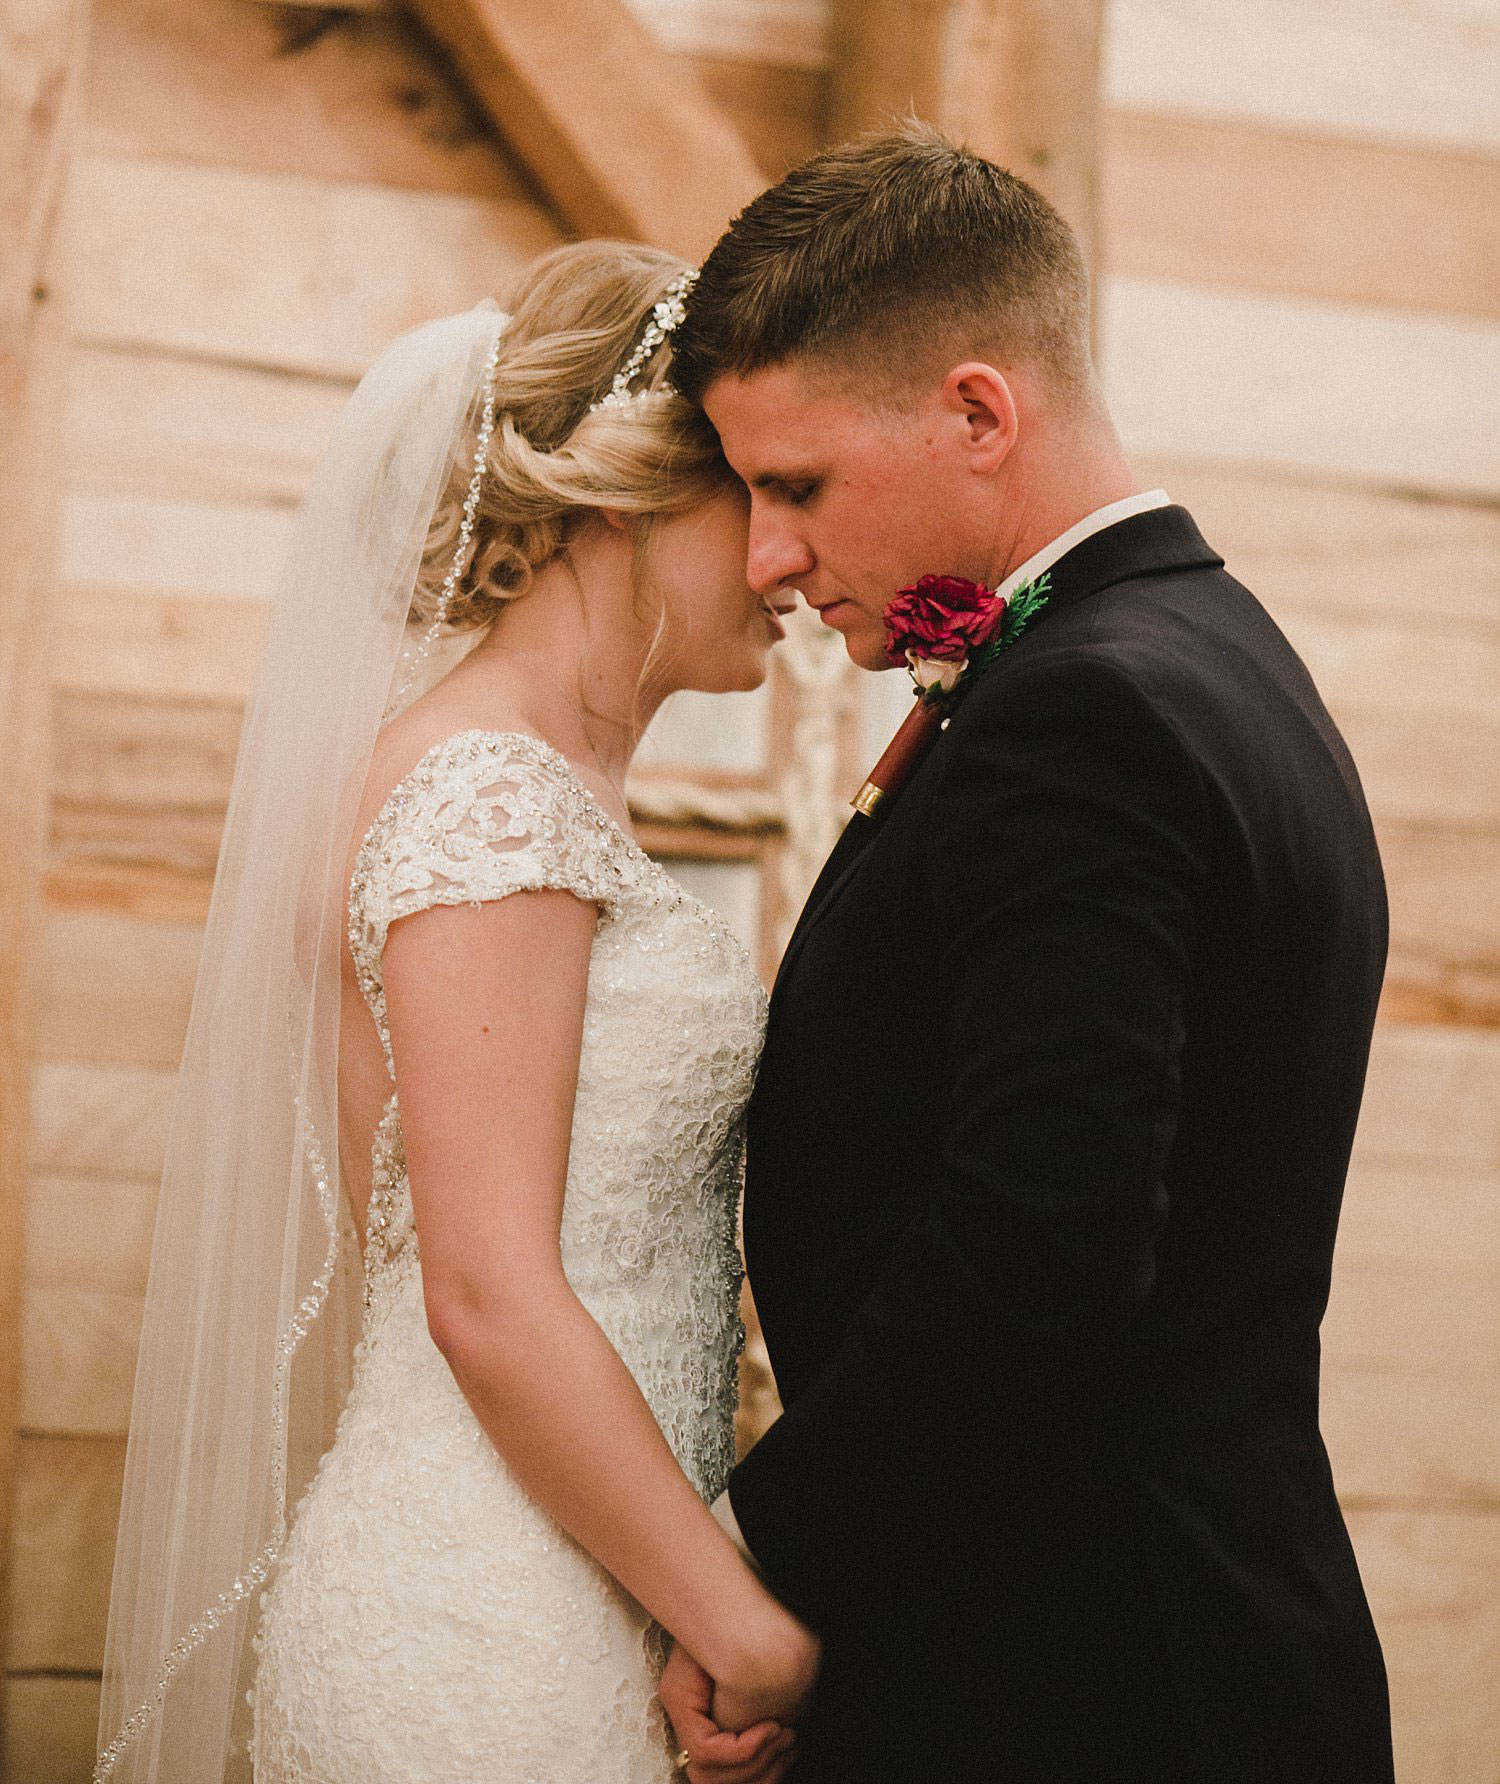 Hollow Hill Farm Event Center Wedding bride and groom kissing